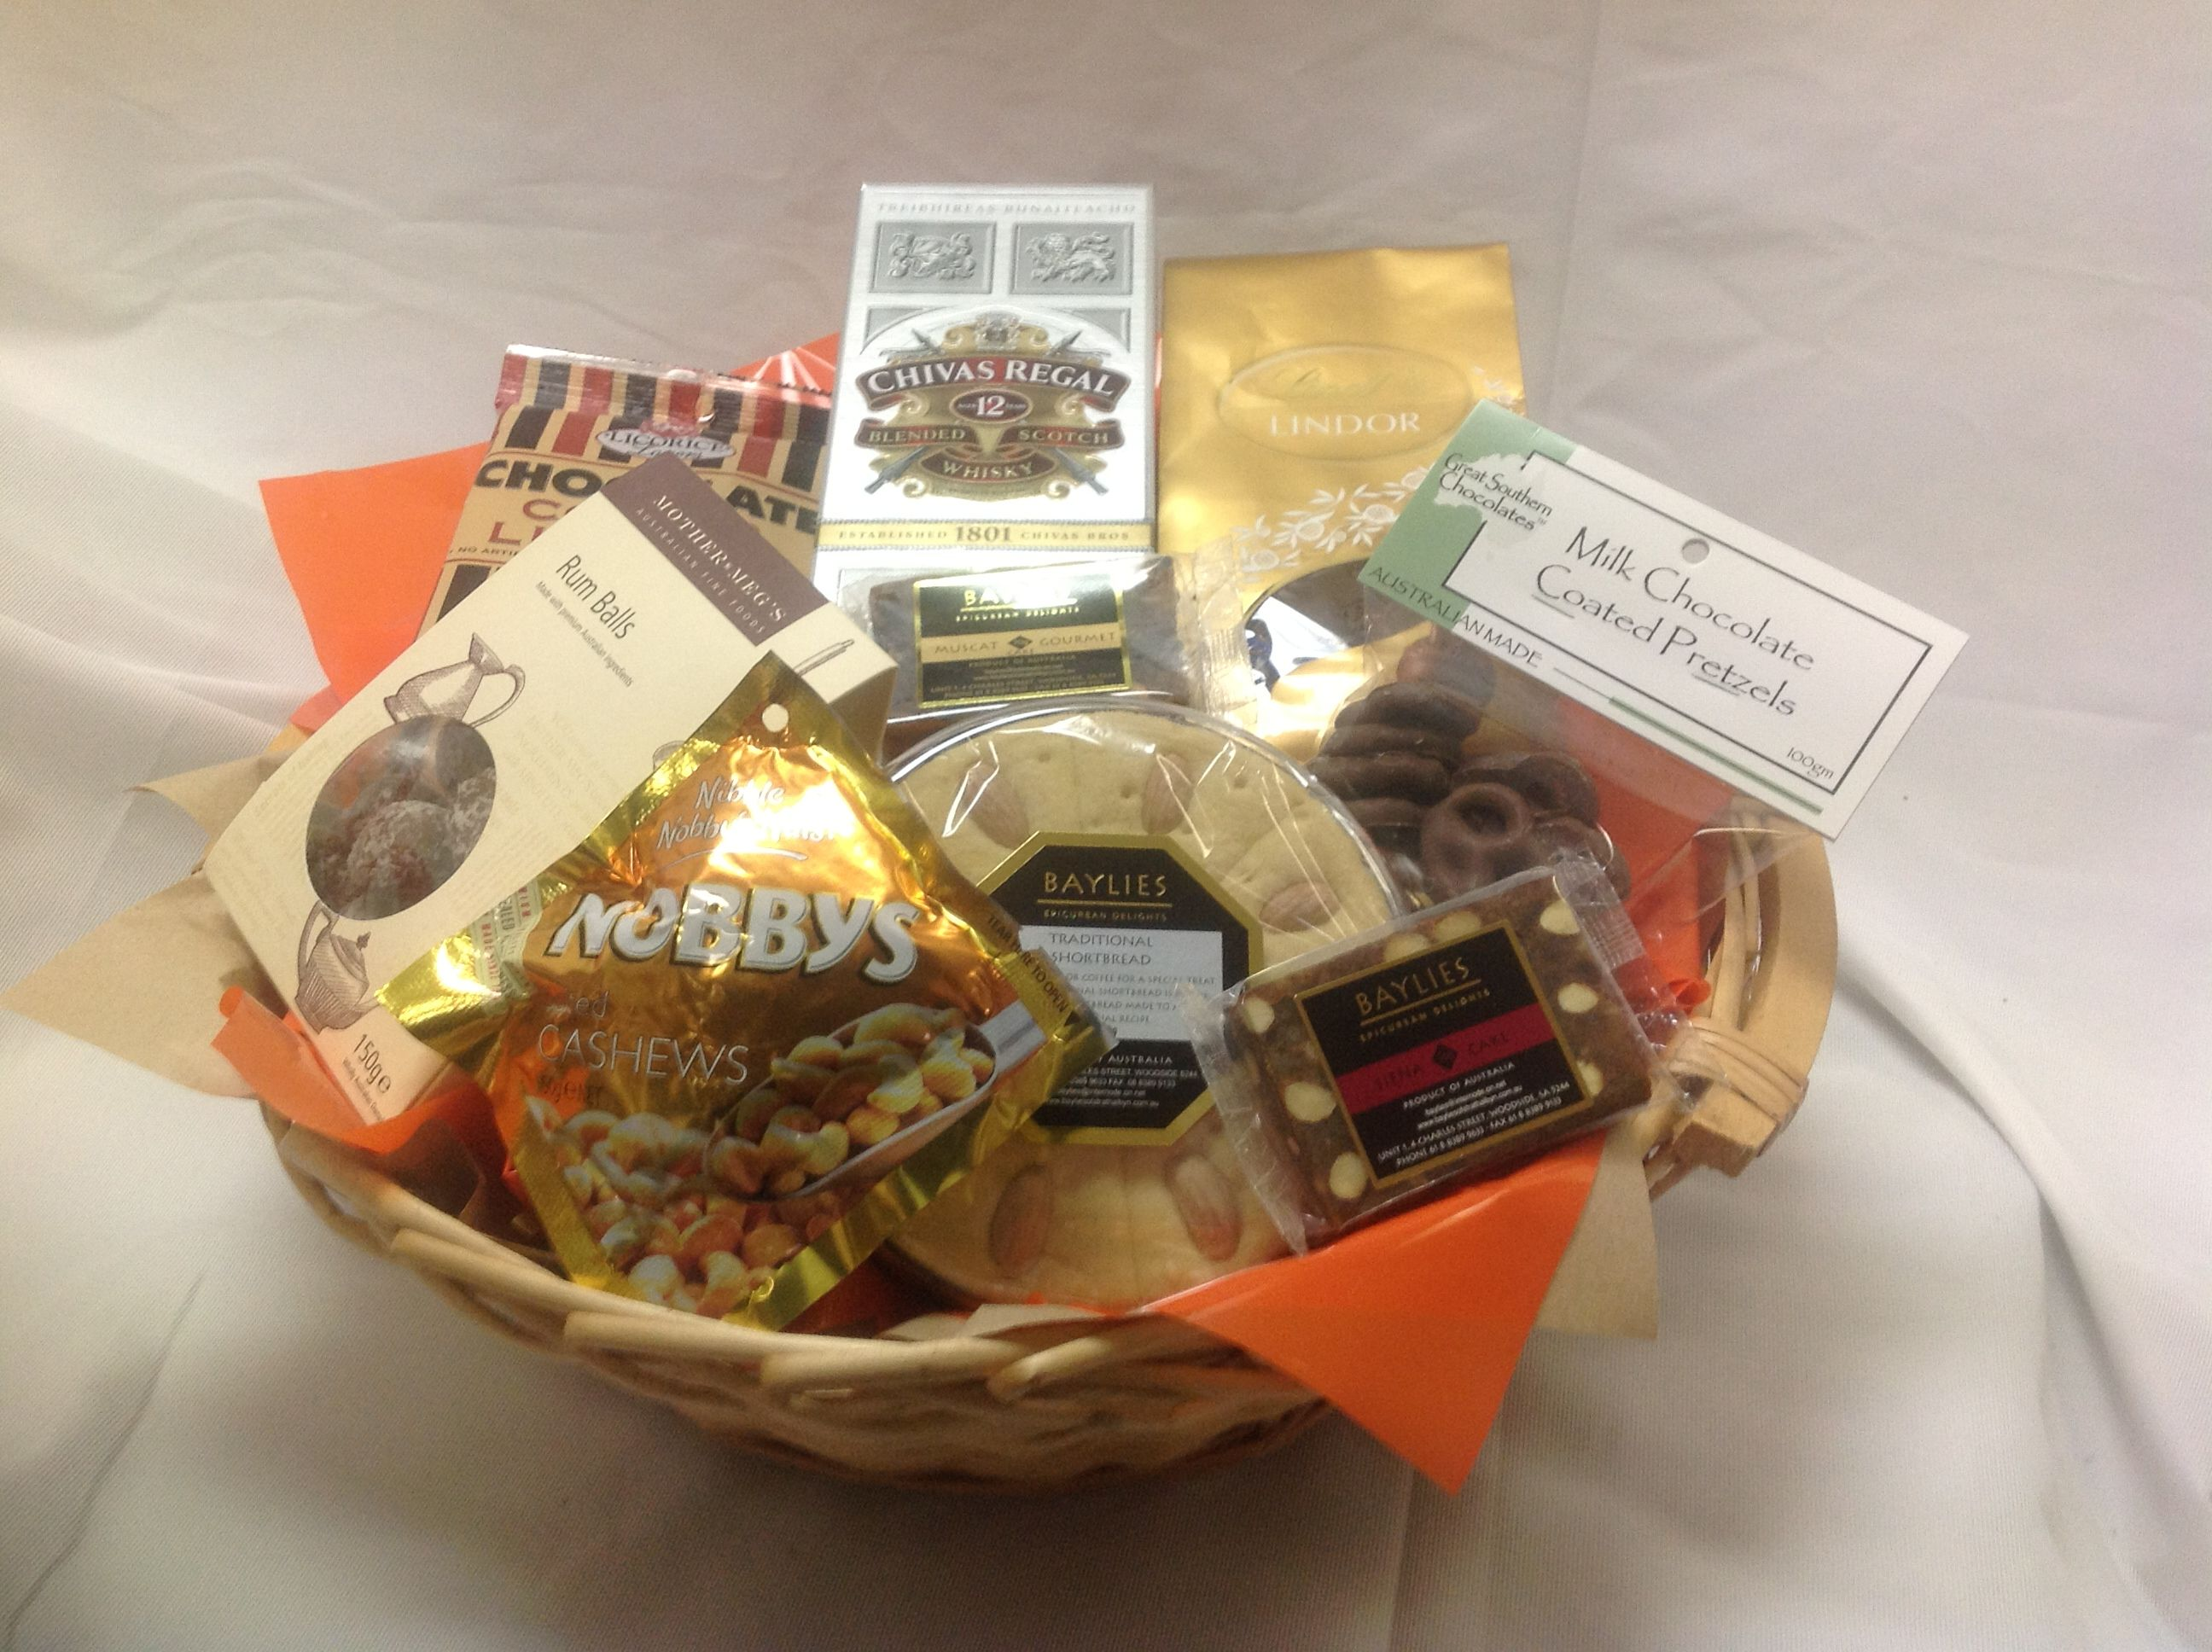 Whiskey nibbles basket from sendabasketsa unley south whiskey nibbles basket from sendabasketsa unley south australia facebook negle Gallery